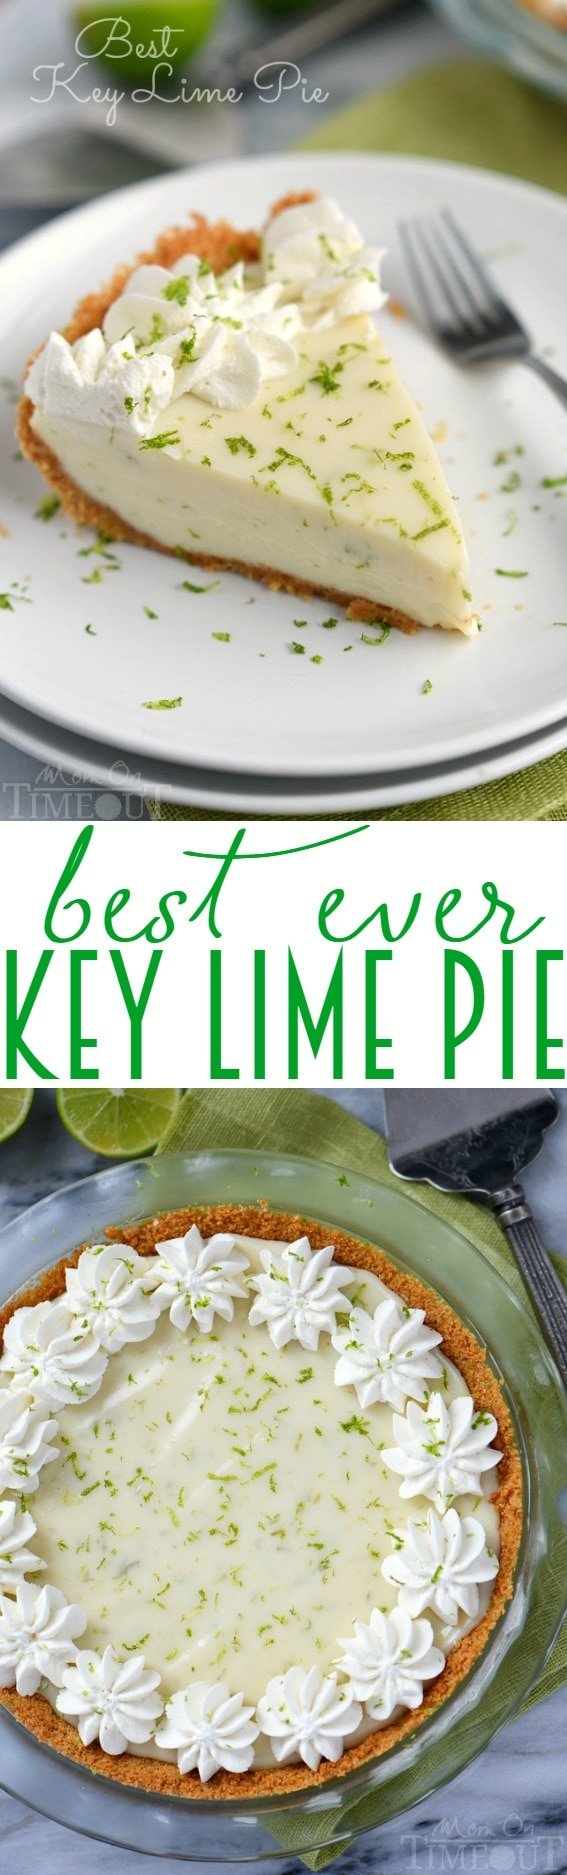 key-lime-pie-collage